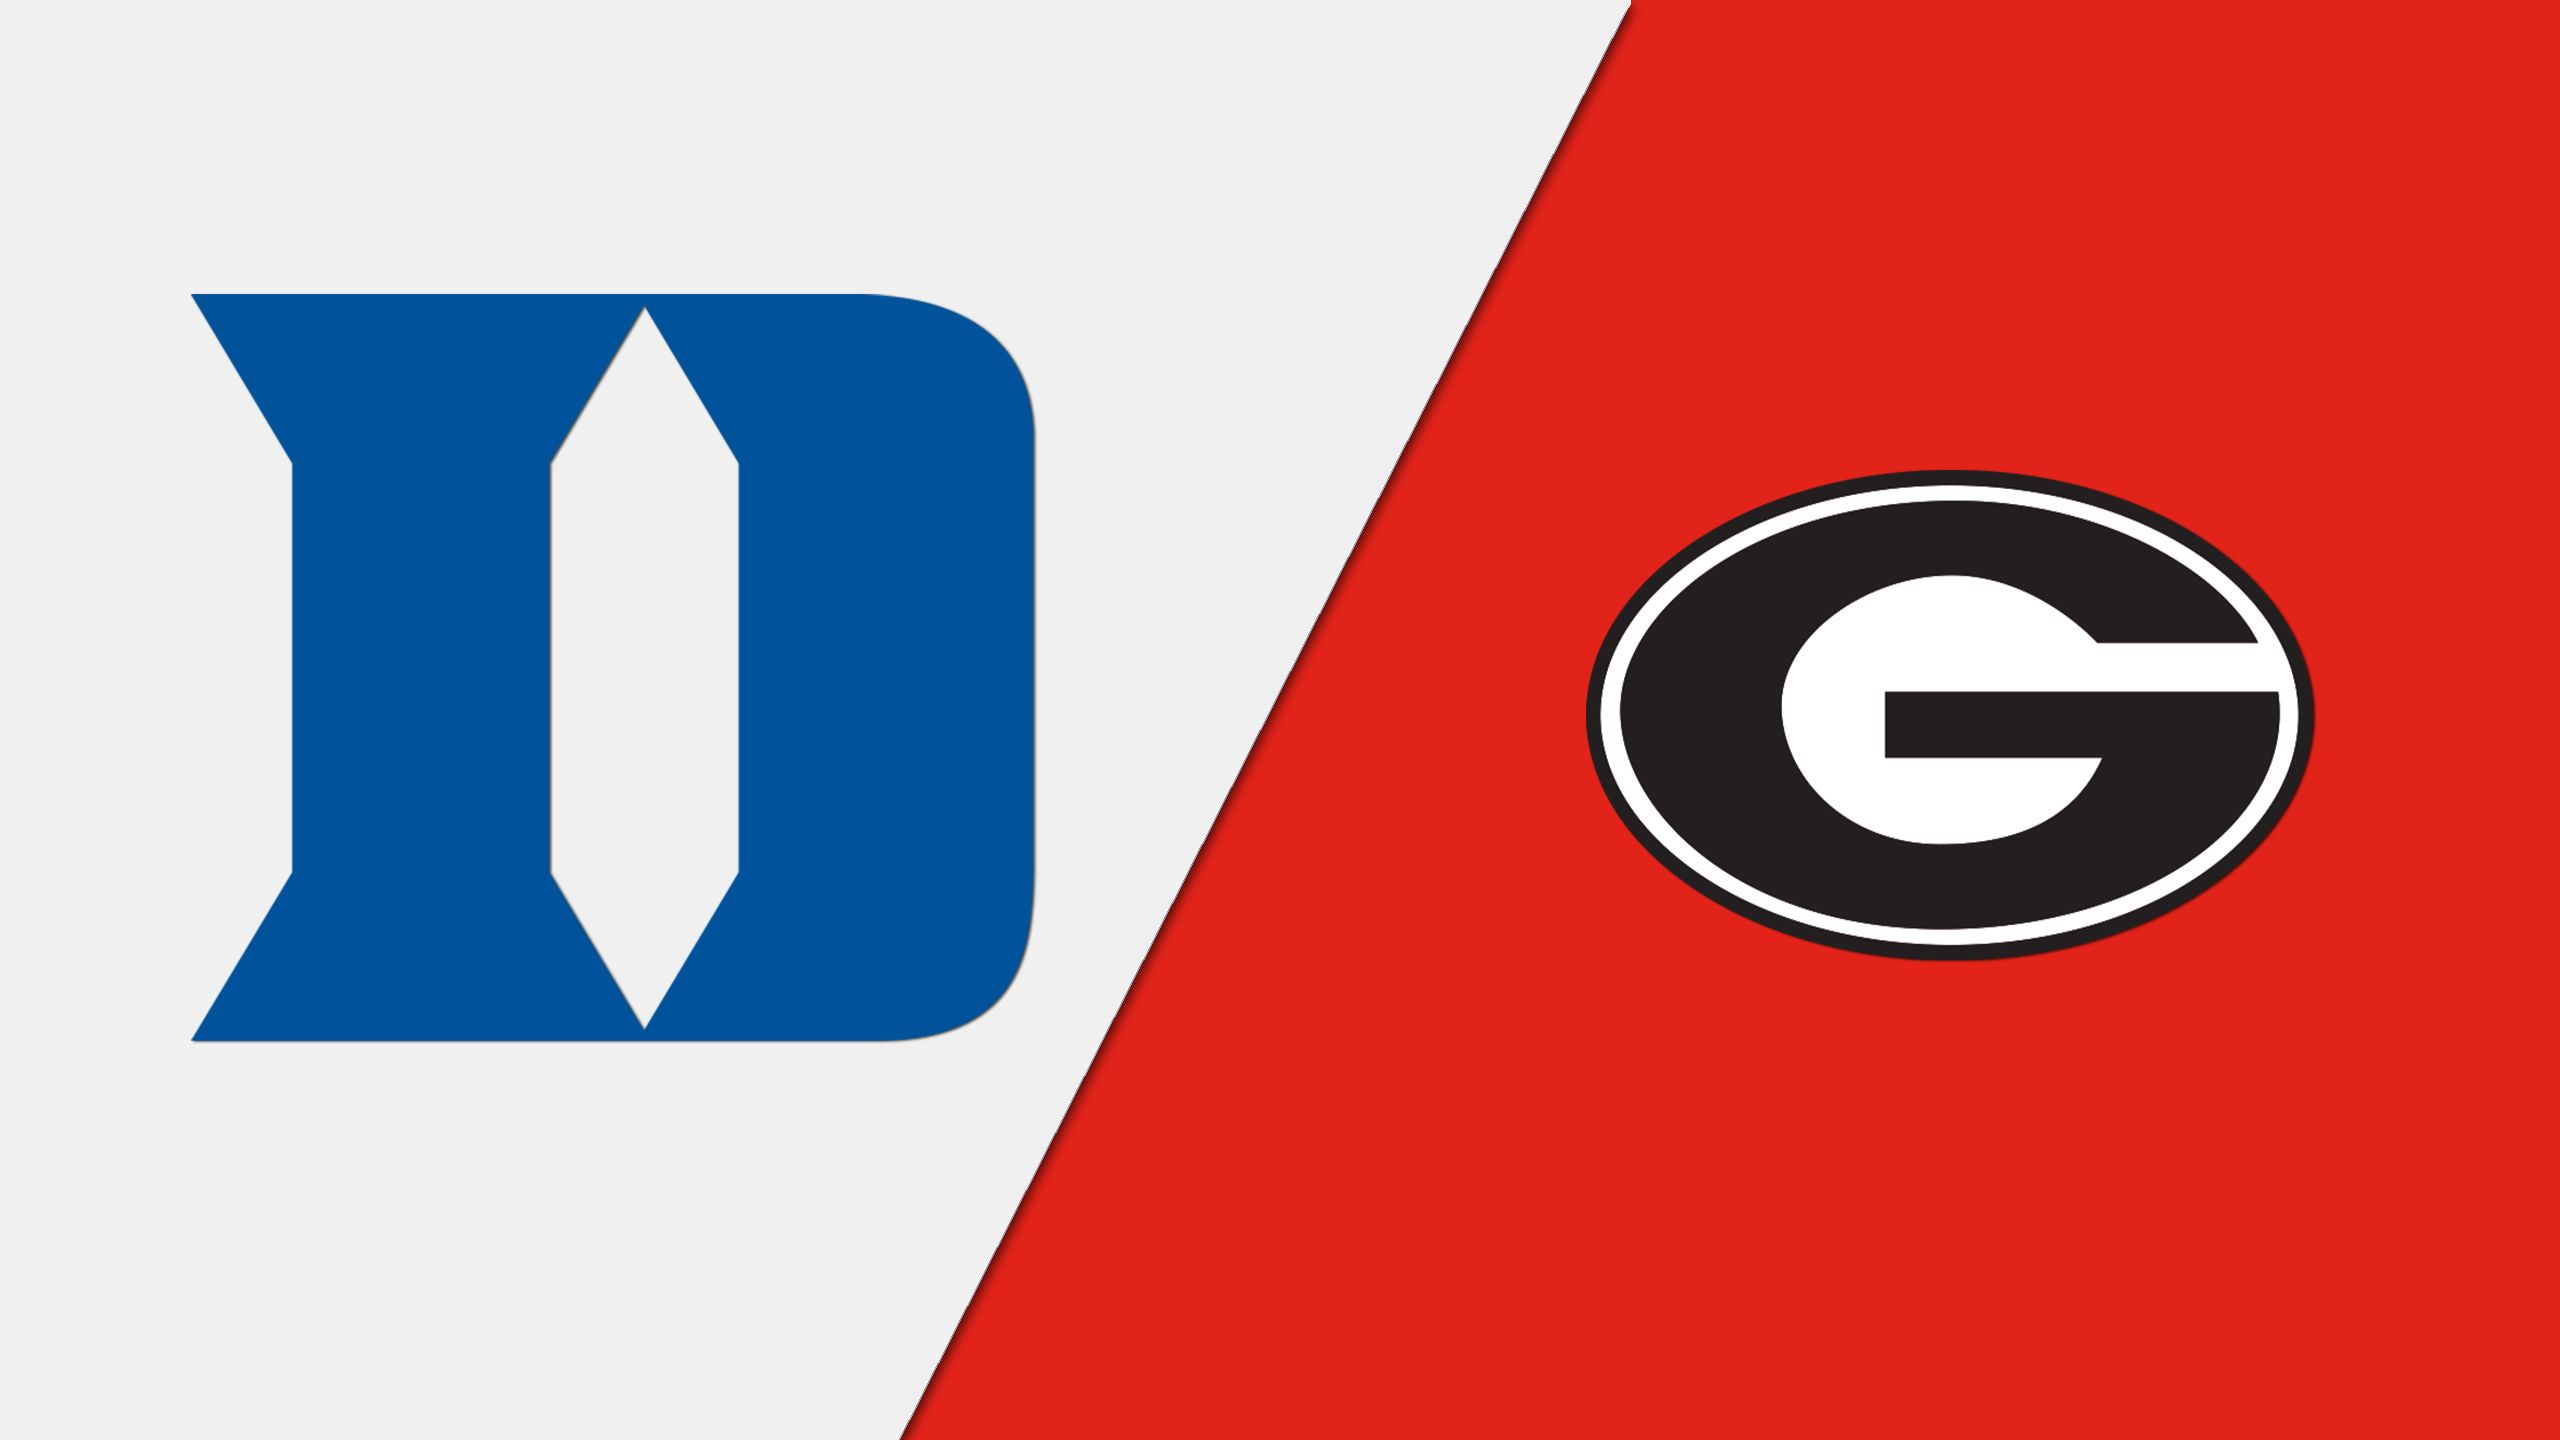 #5 Duke vs. #4 Georgia (Second Round) (NCAA Women's Basketball Championship)